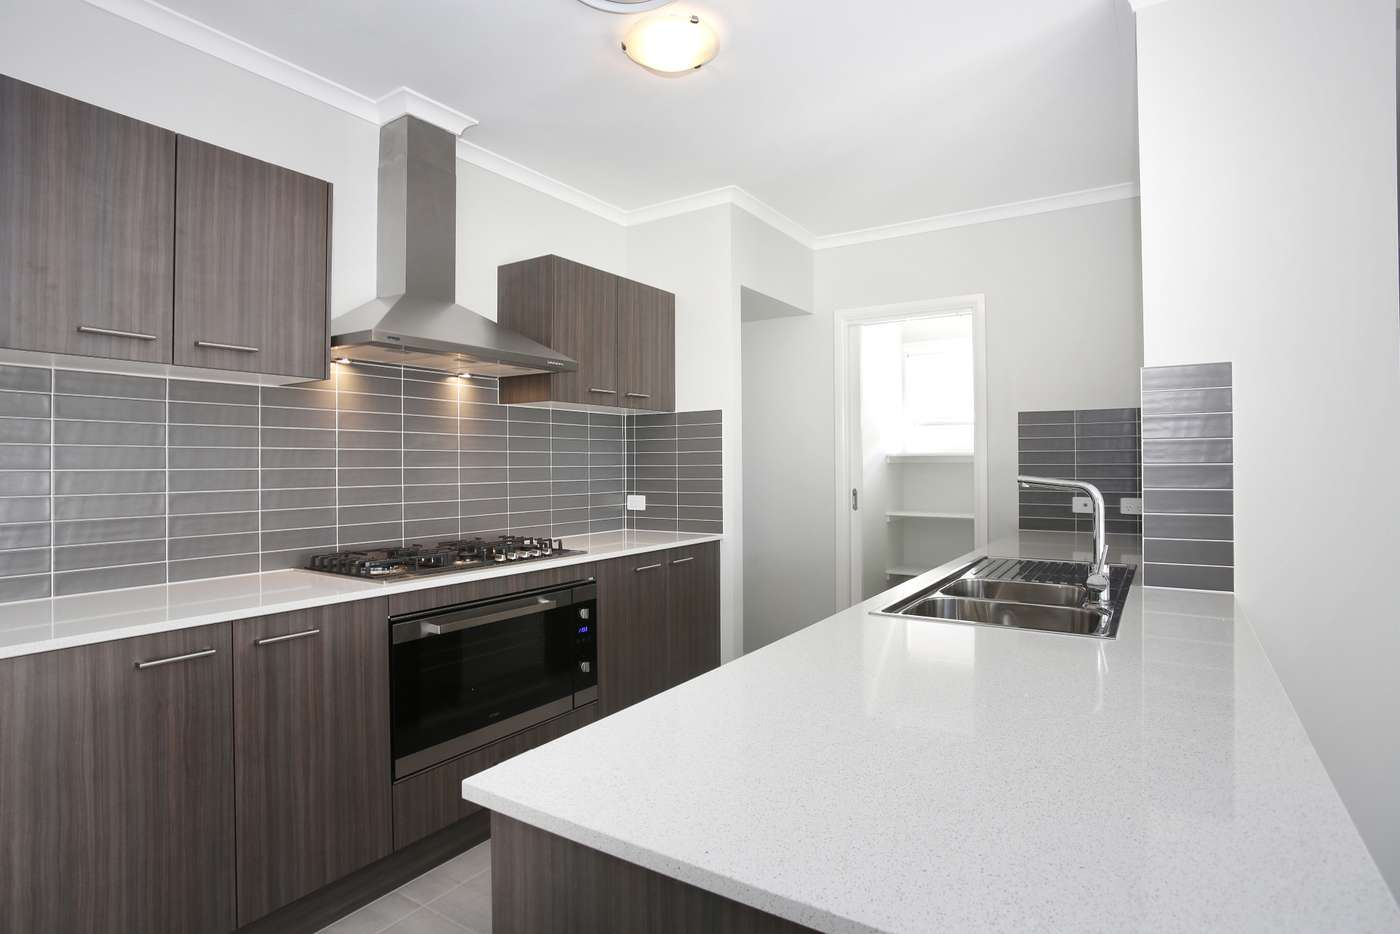 Fifth view of Homely house listing, 37 Loveday Street, Oran Park NSW 2570